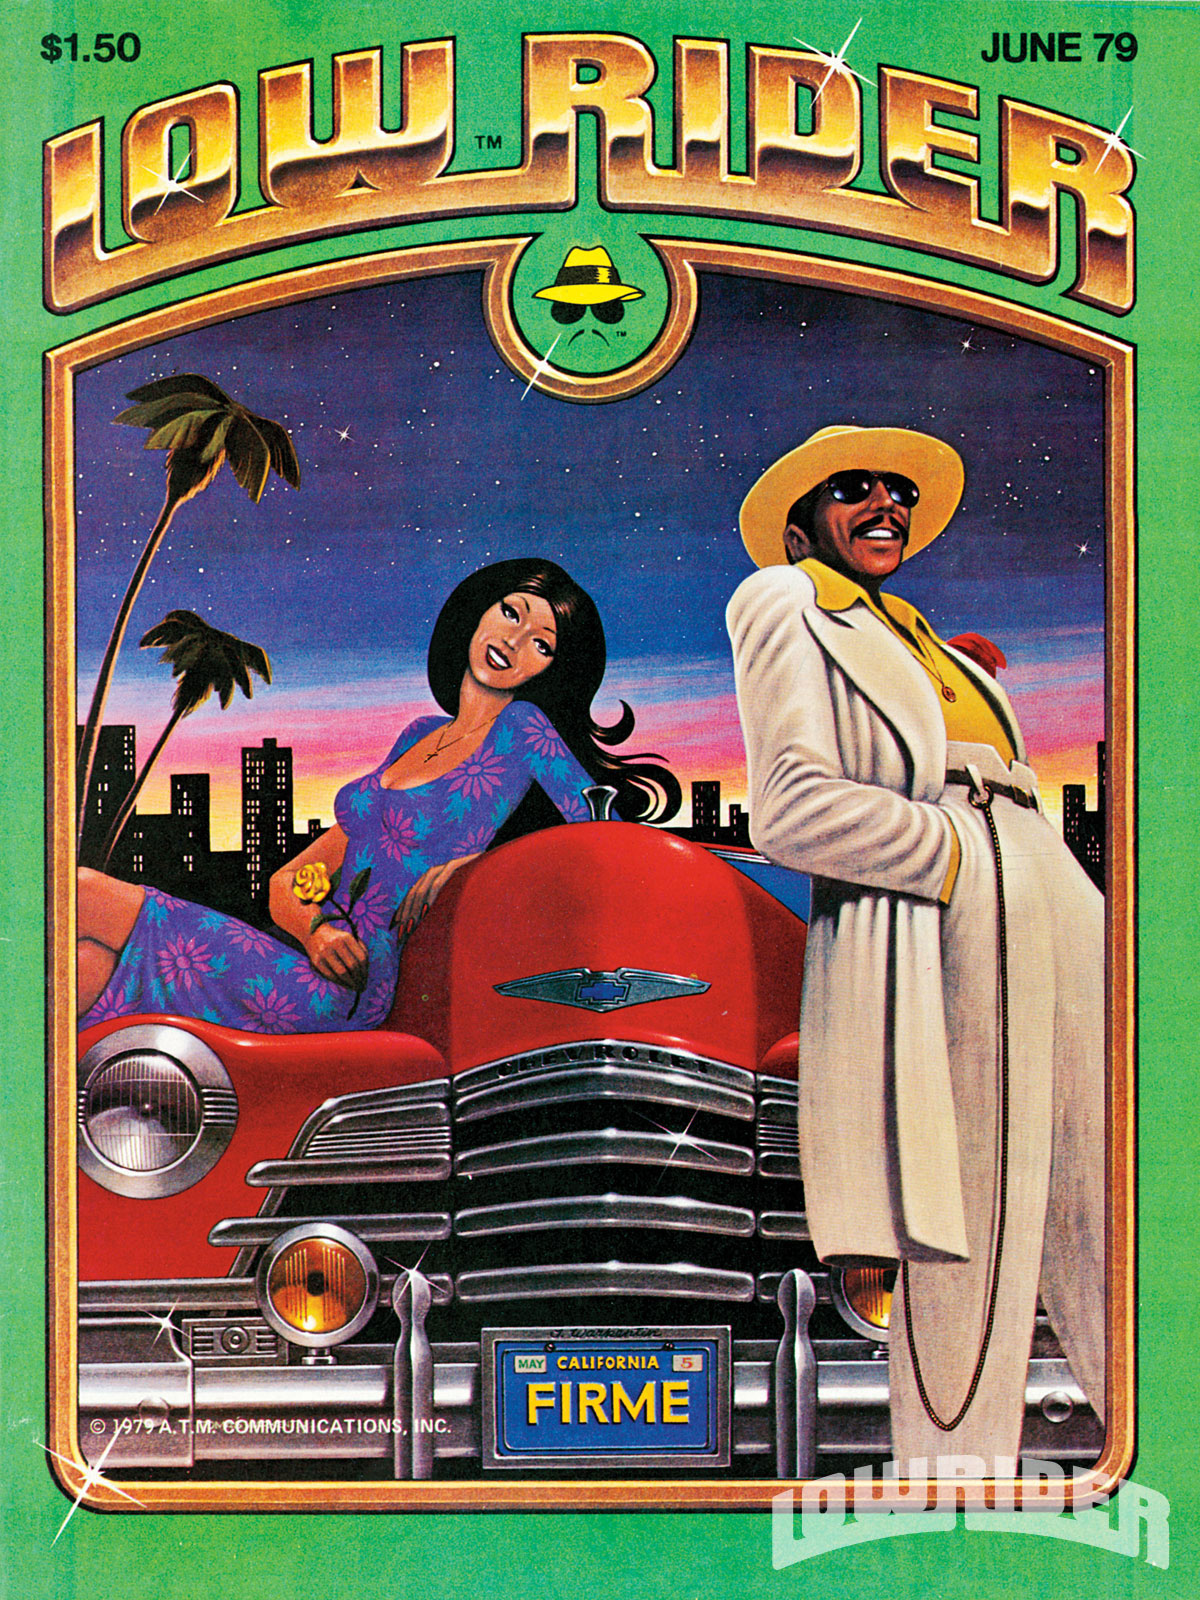 9 Old School Cool Pictures From Lowrider Magazine In The 70s